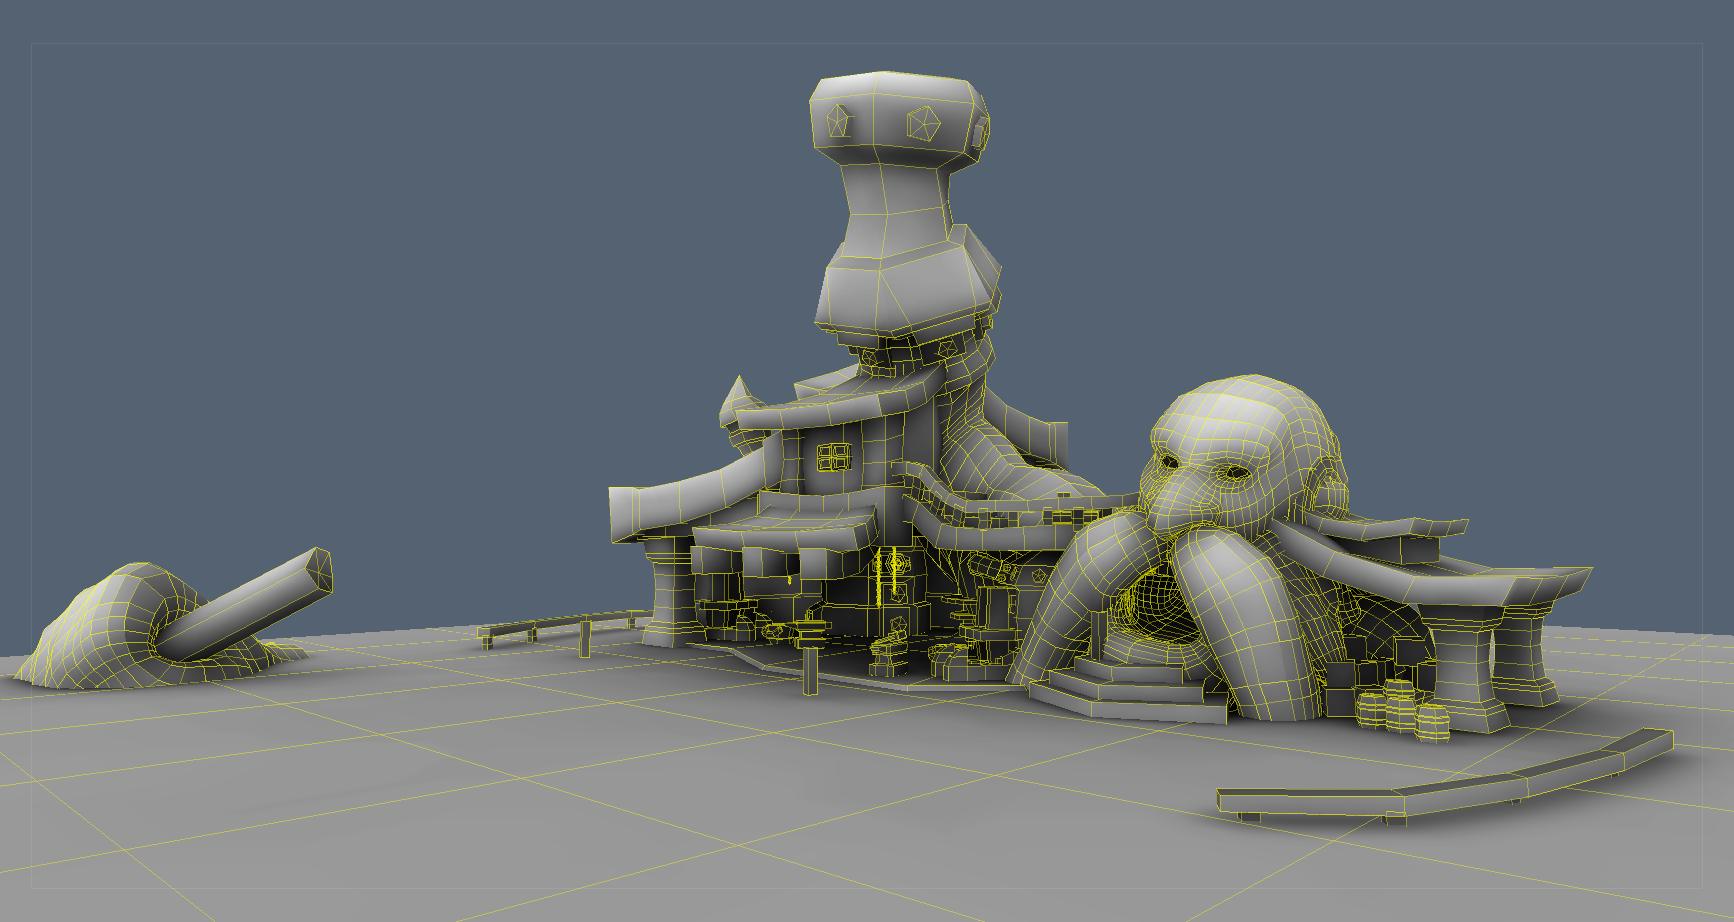 Quick Ambient Occlusion Bake